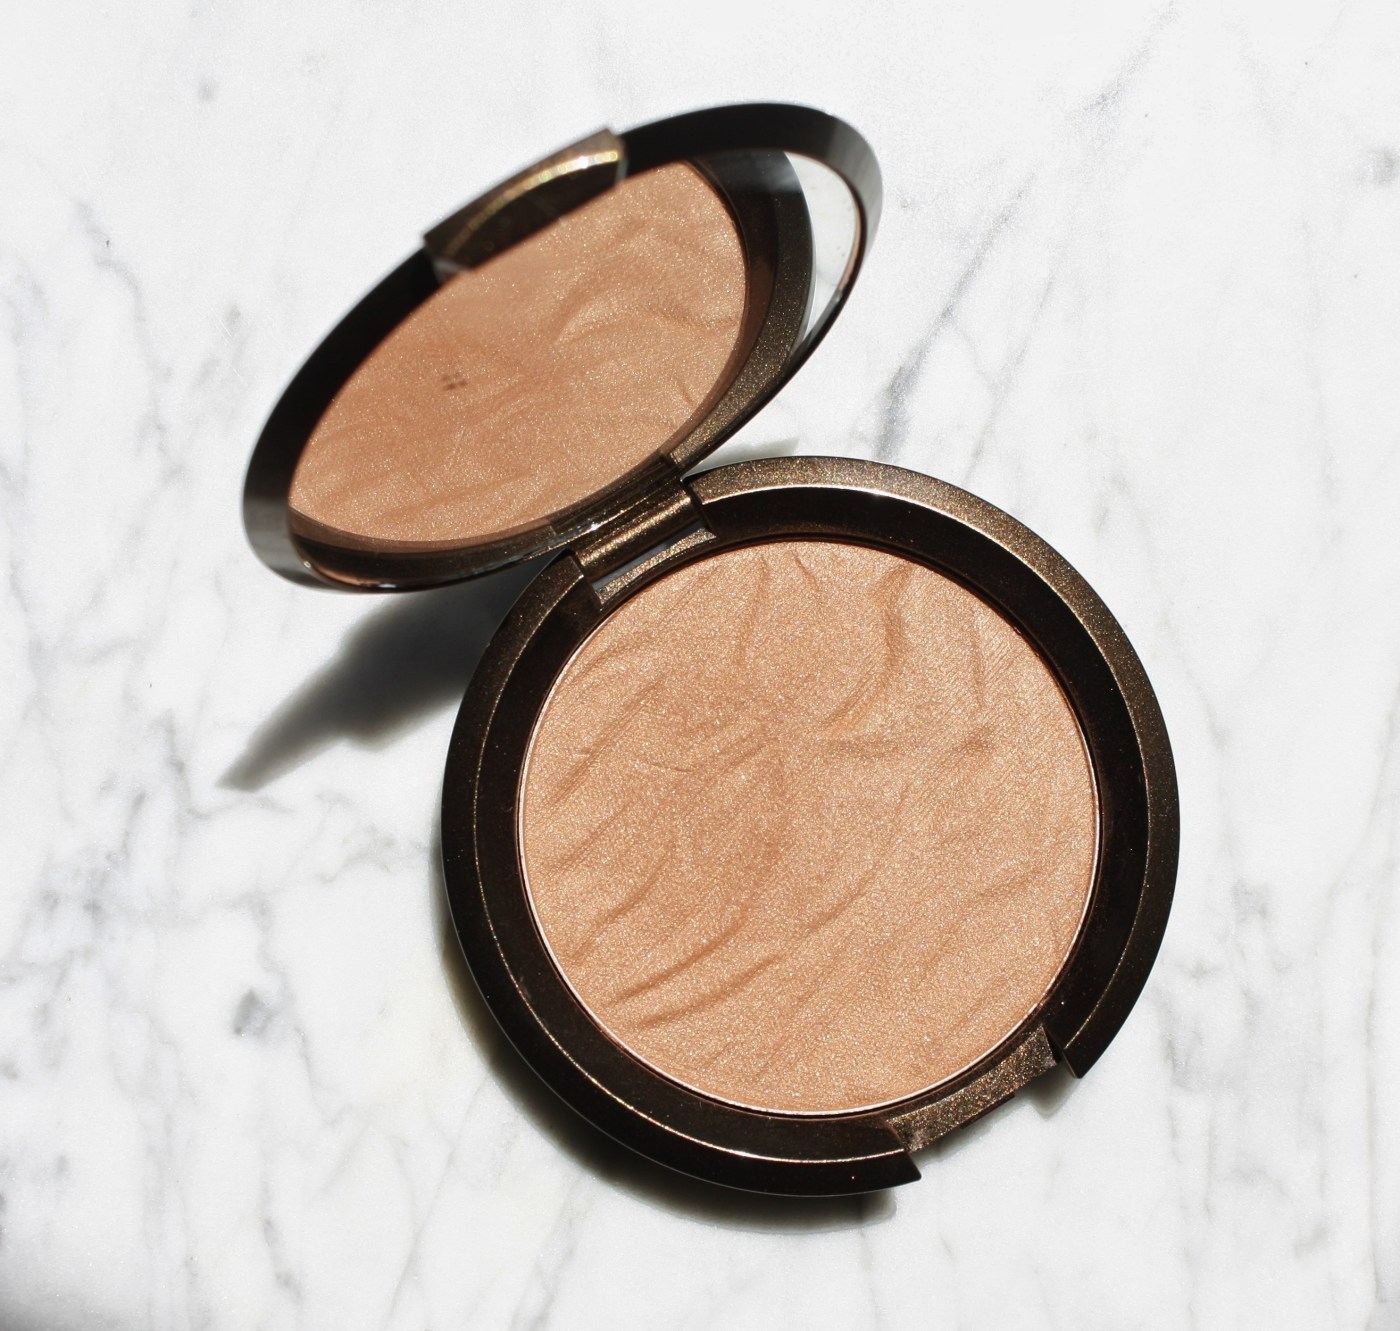 BEACHY CHEEKS WITH BECCA COSMETICS' SUNLIT BRONZER